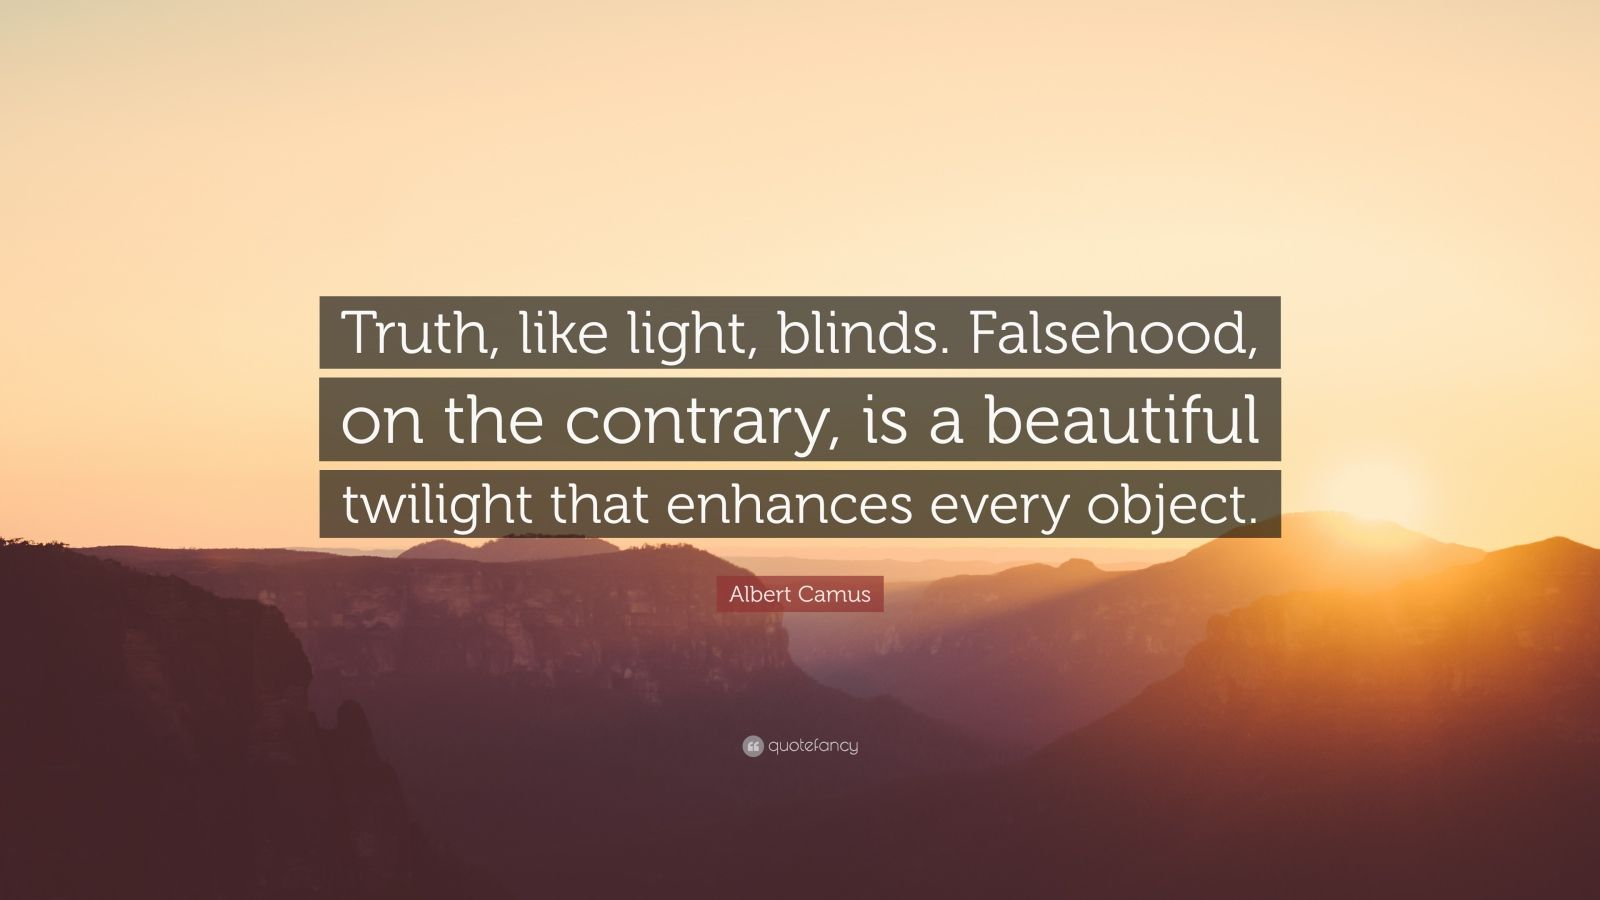 """Albert Camus Quote: """"Truth, like light, blinds. Falsehood, on the contrary, is a beautiful twilight that enhances every object."""""""